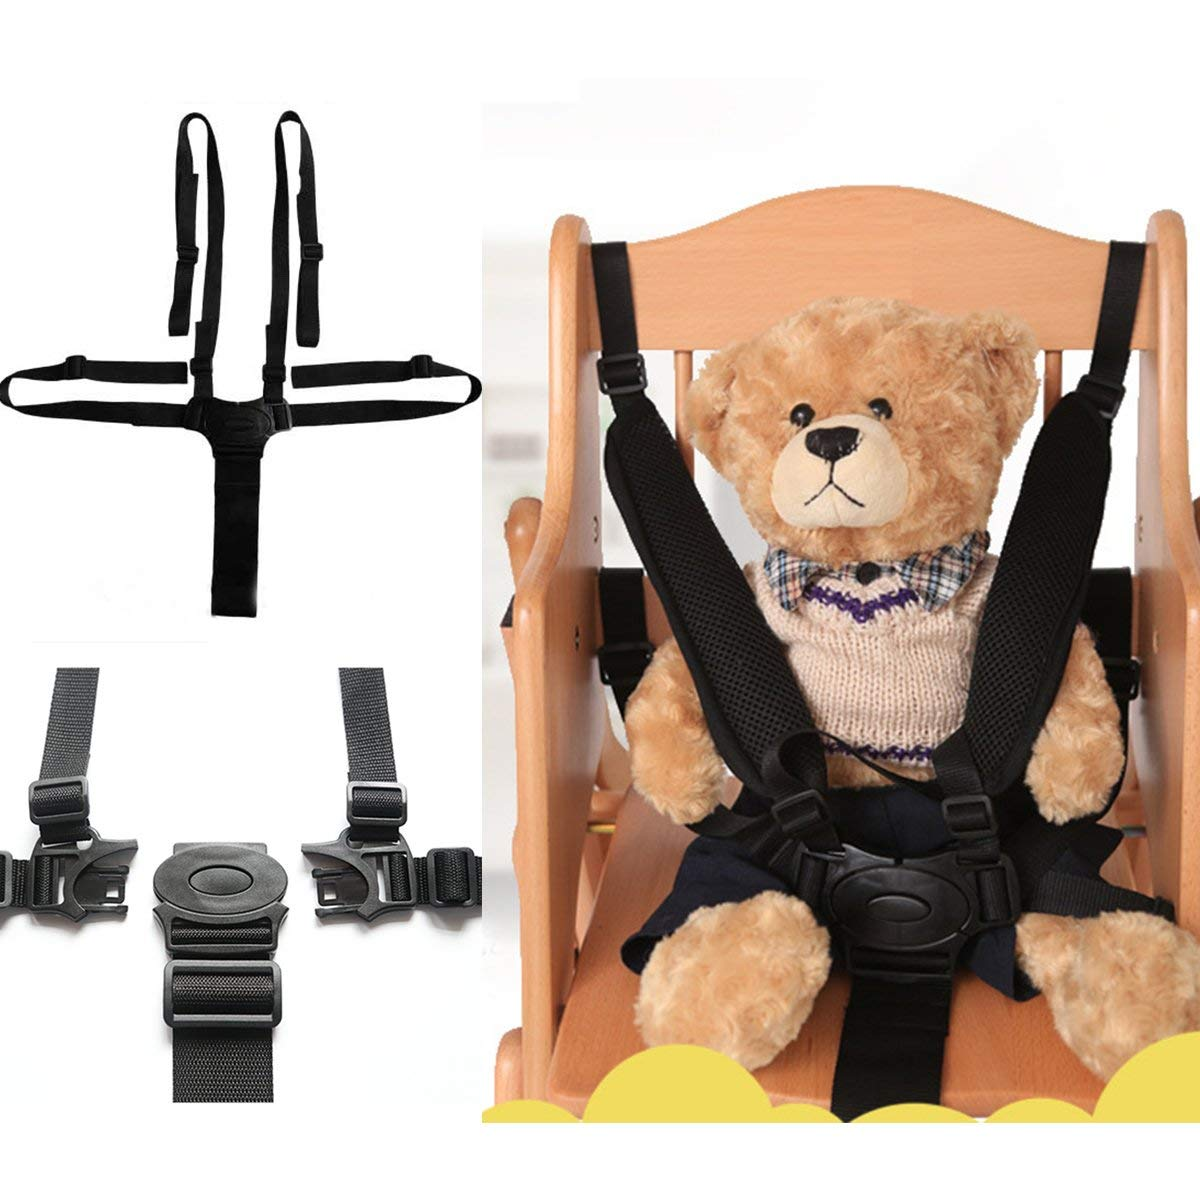 Other Tools - Portable Babies Chair Stroller Five-Point Safety Belt Harness Stroller 5 Safety Belt Stroller - Chairwoman Rein Child Refuge Chairperson Babe Guard Chairman Rule - 1PCs